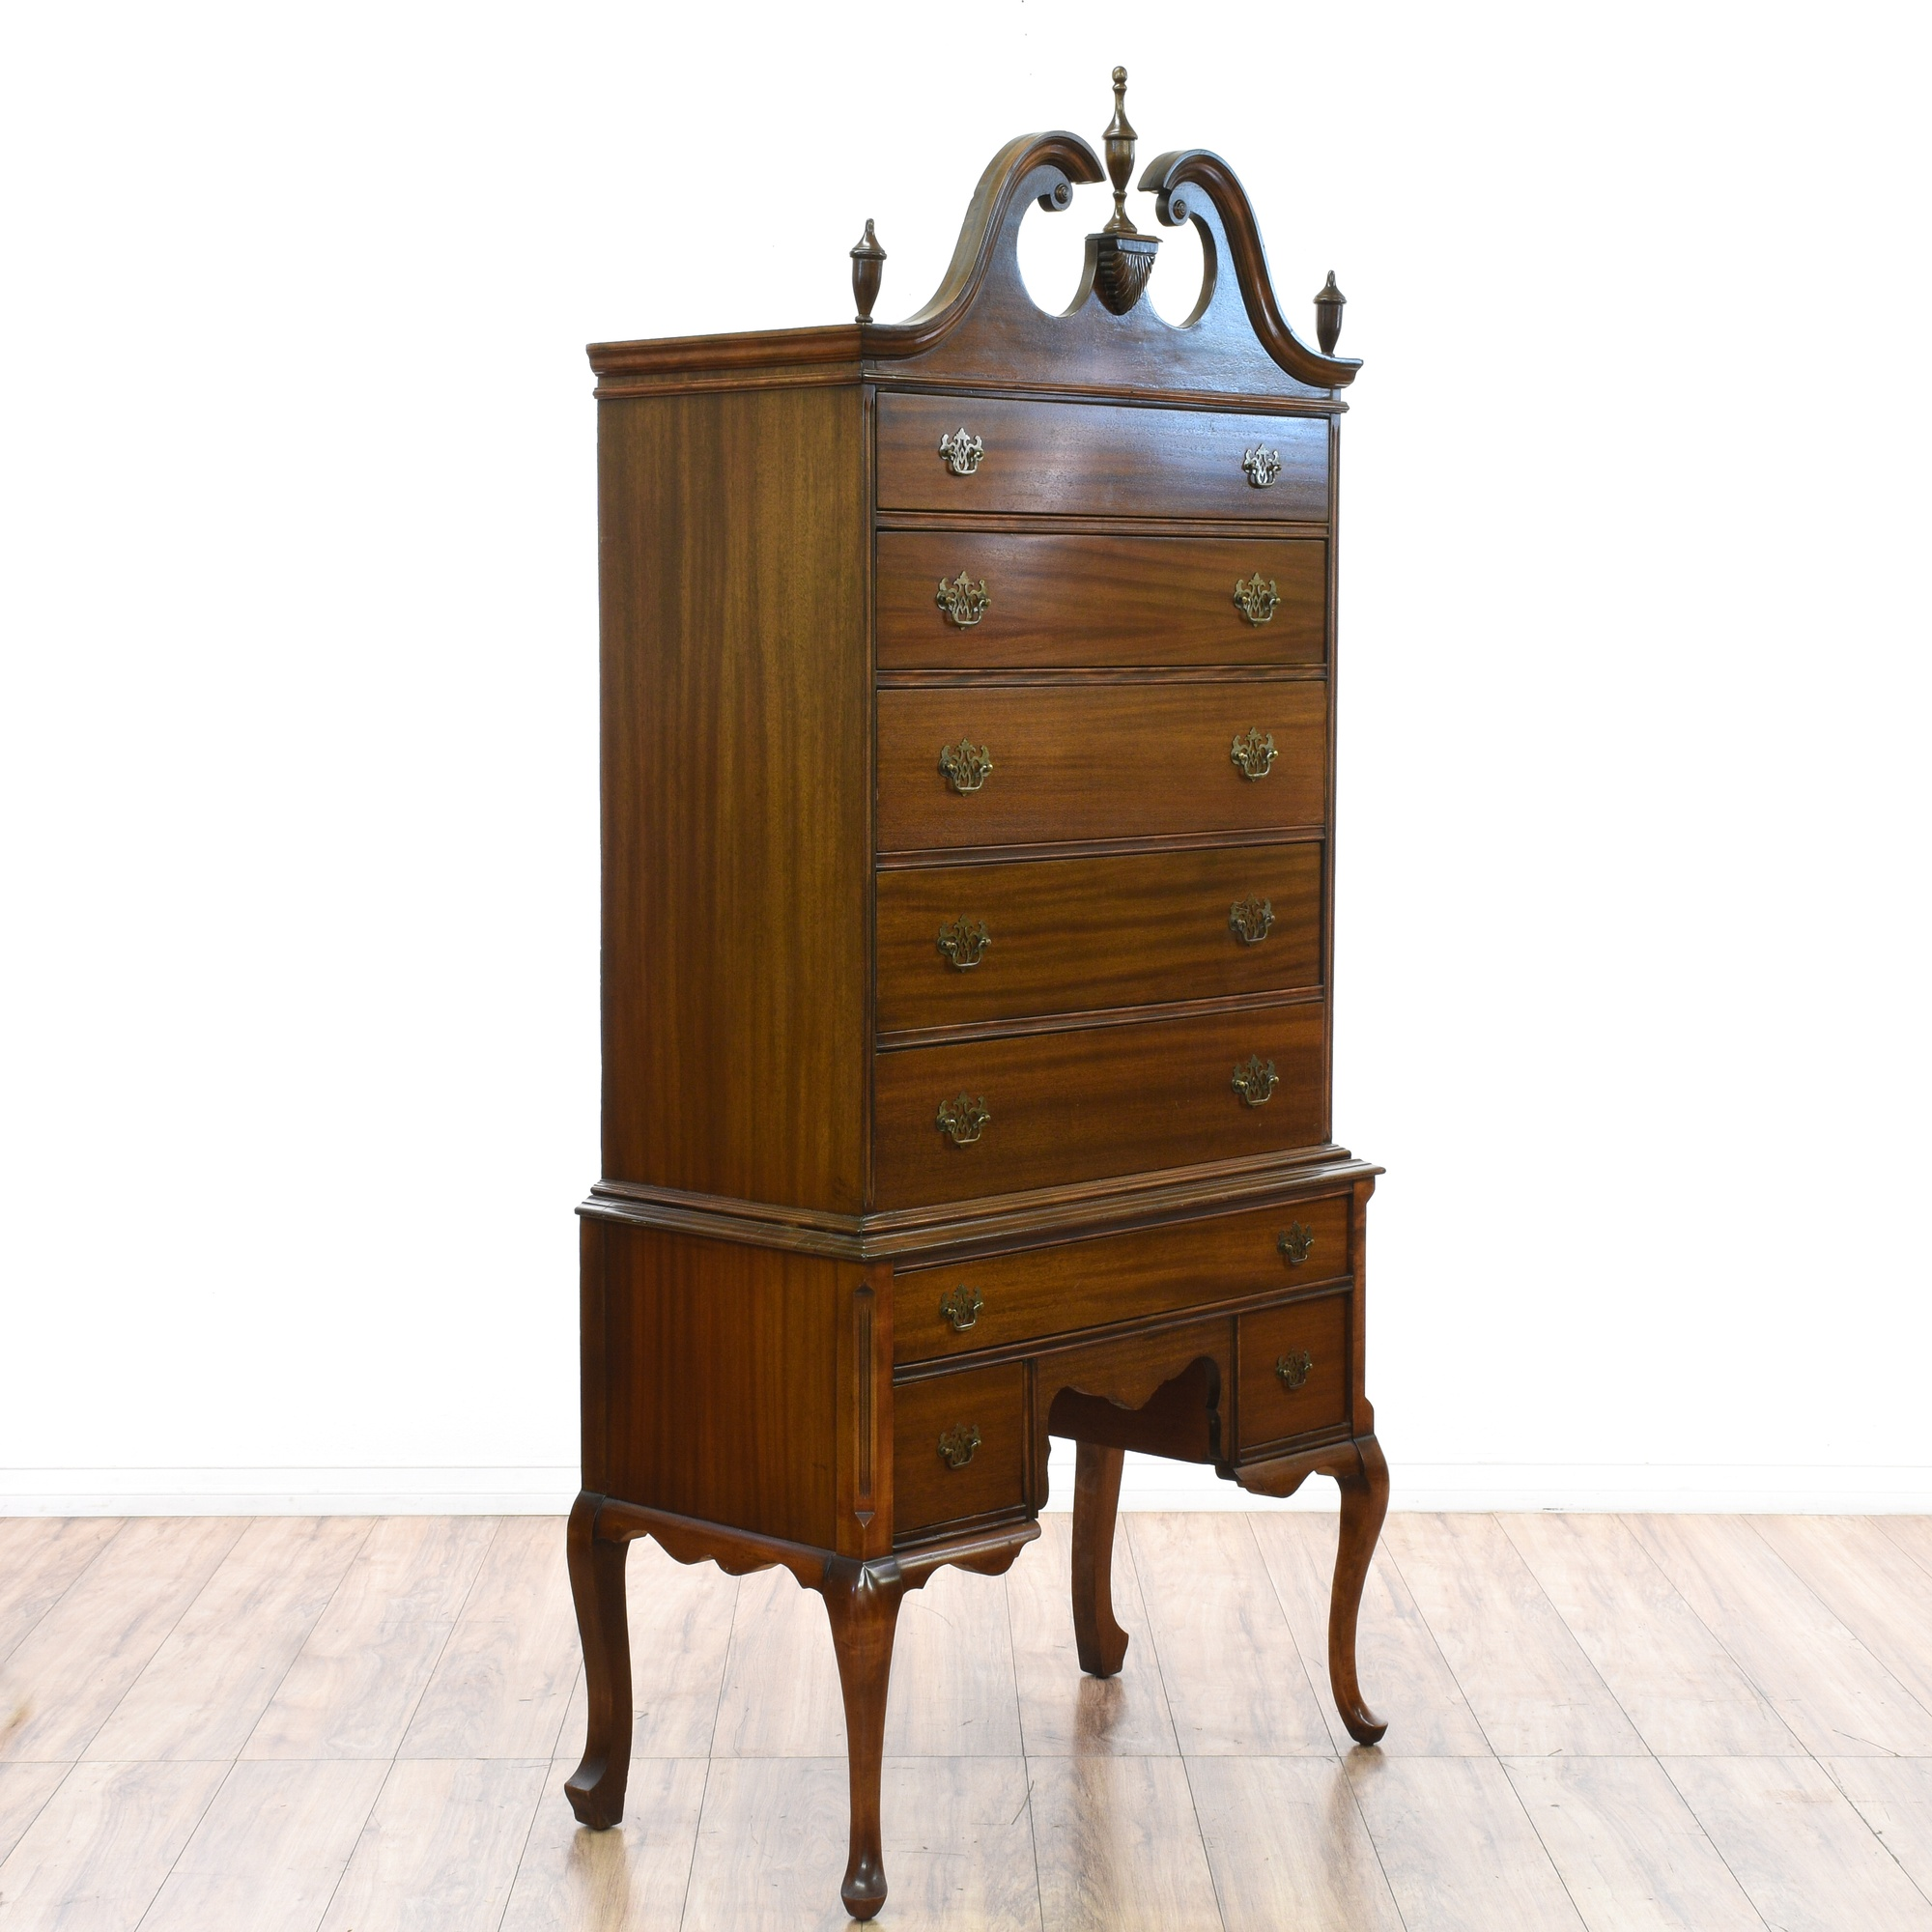 high lot of section with small pin boy chest two federal style piece drawers over crown finials arched mahogany upper burled having three highboy